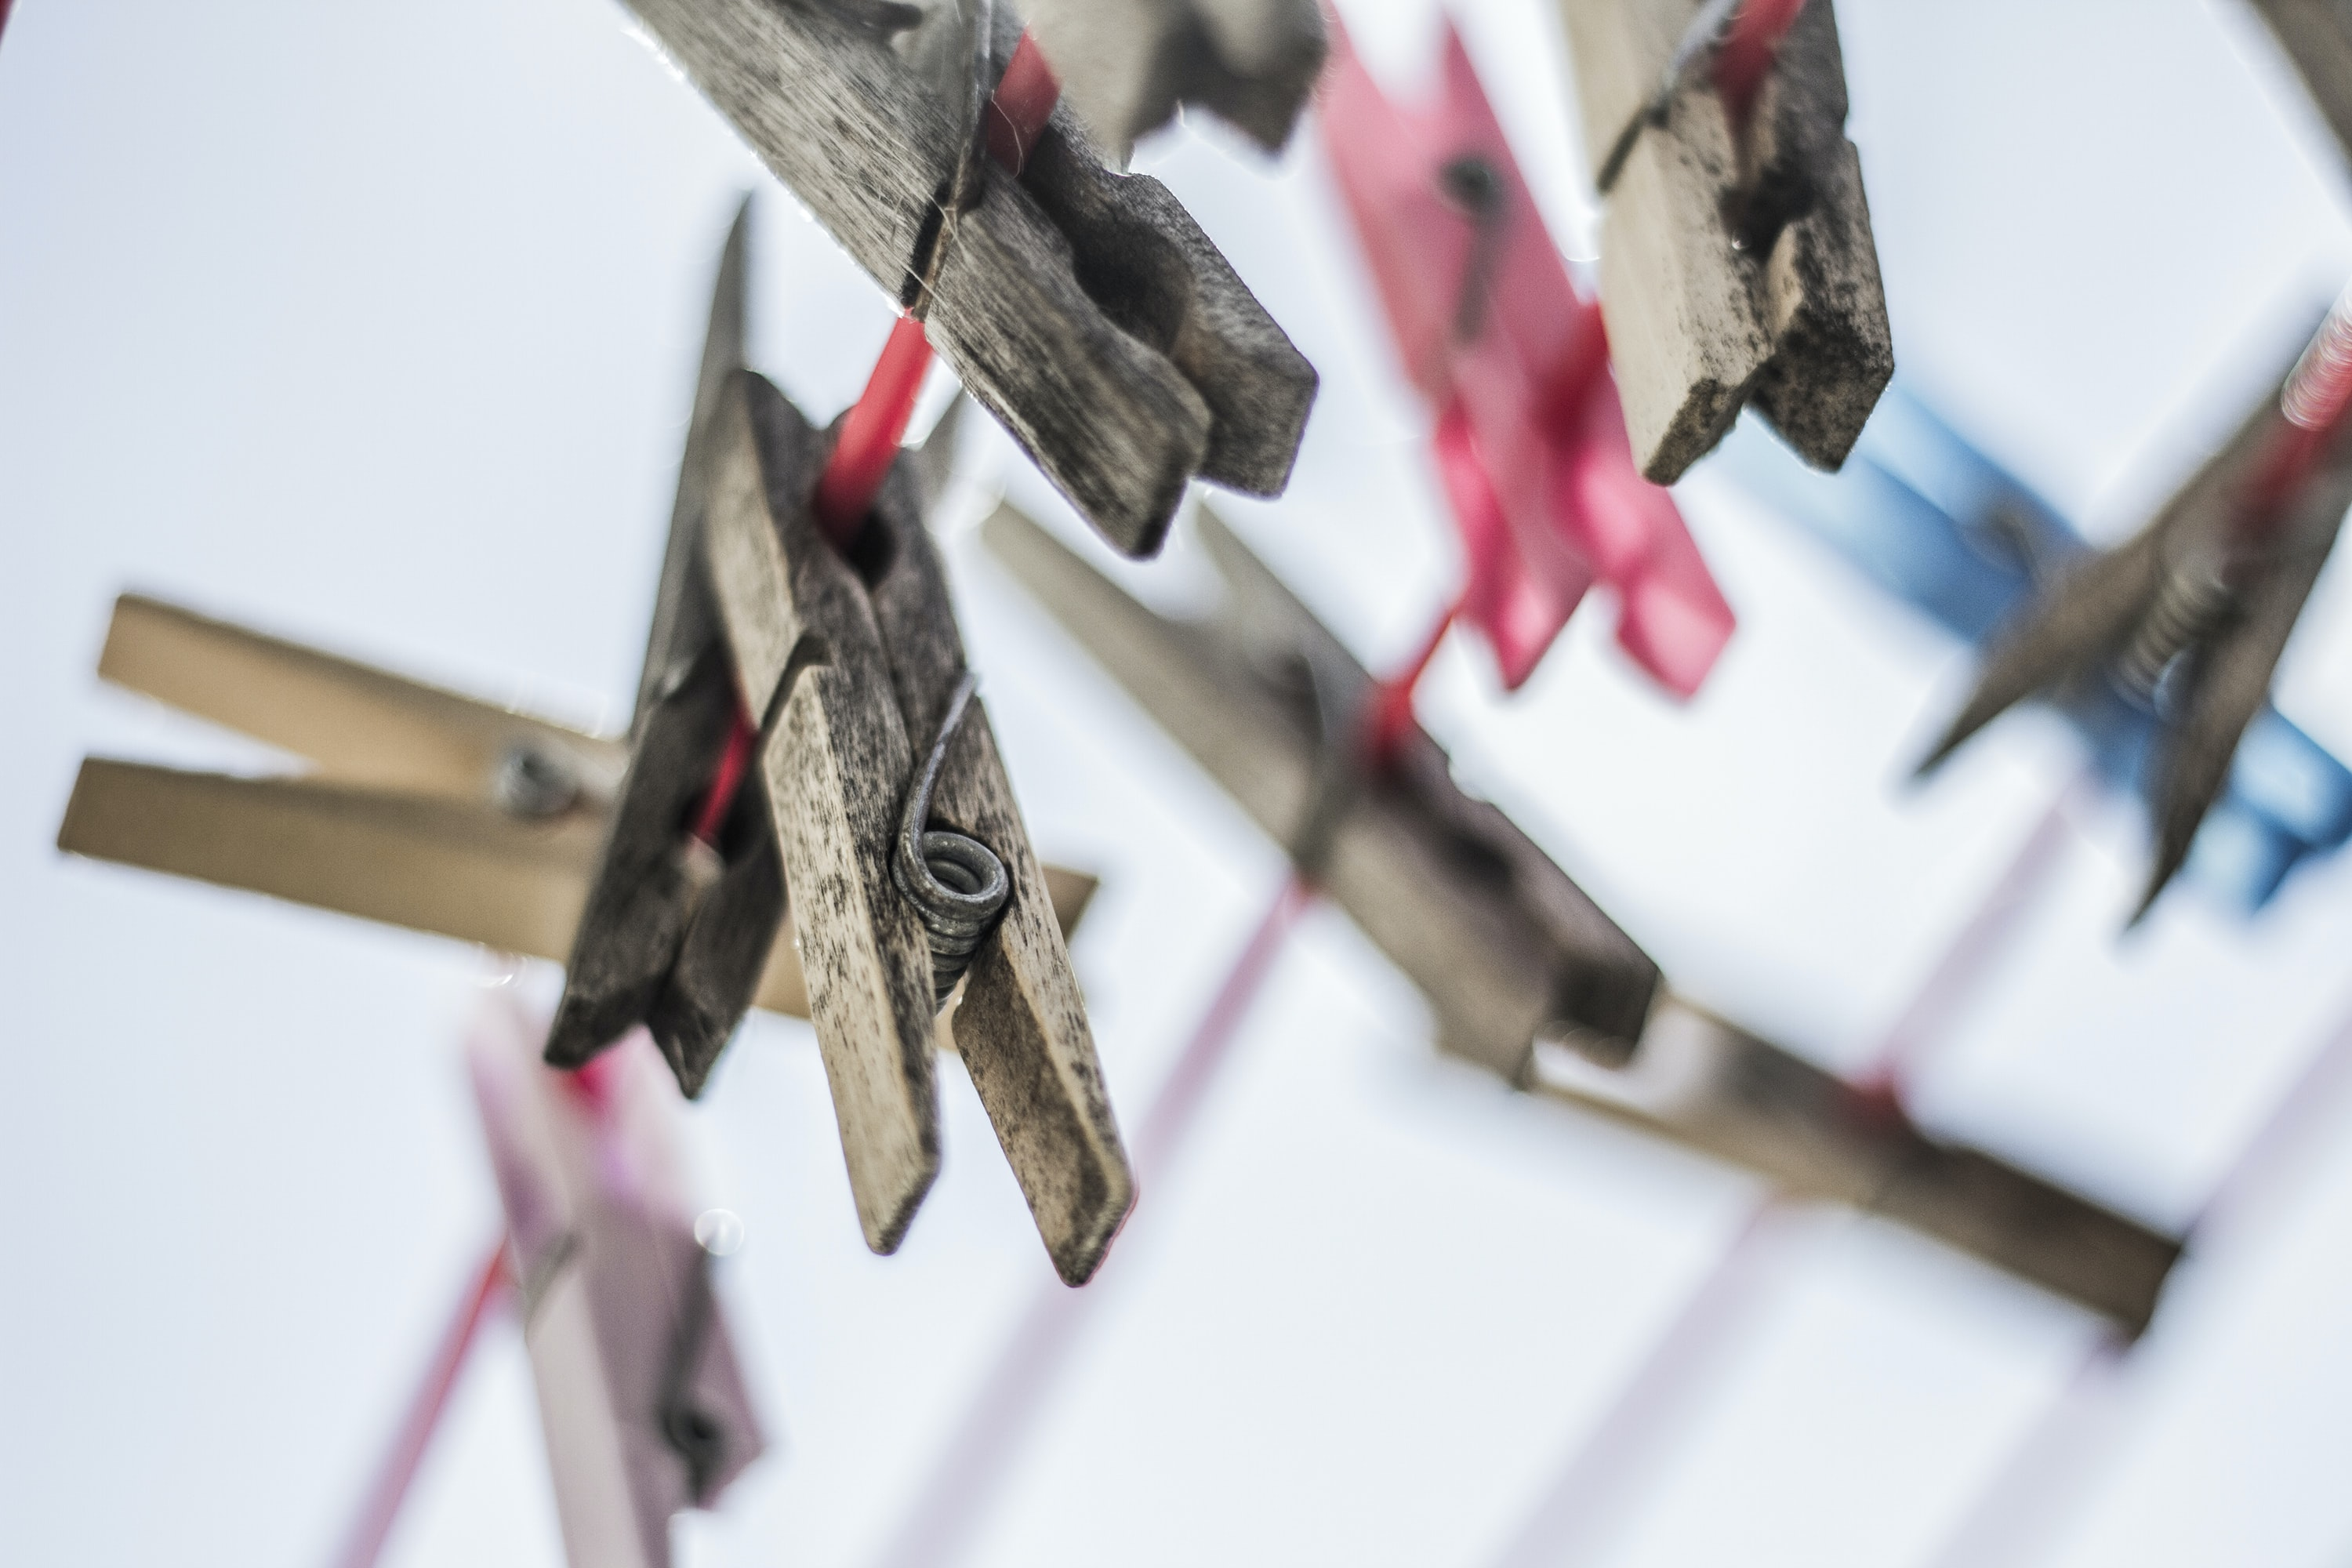 Rustic clothespins hung on a laundry line